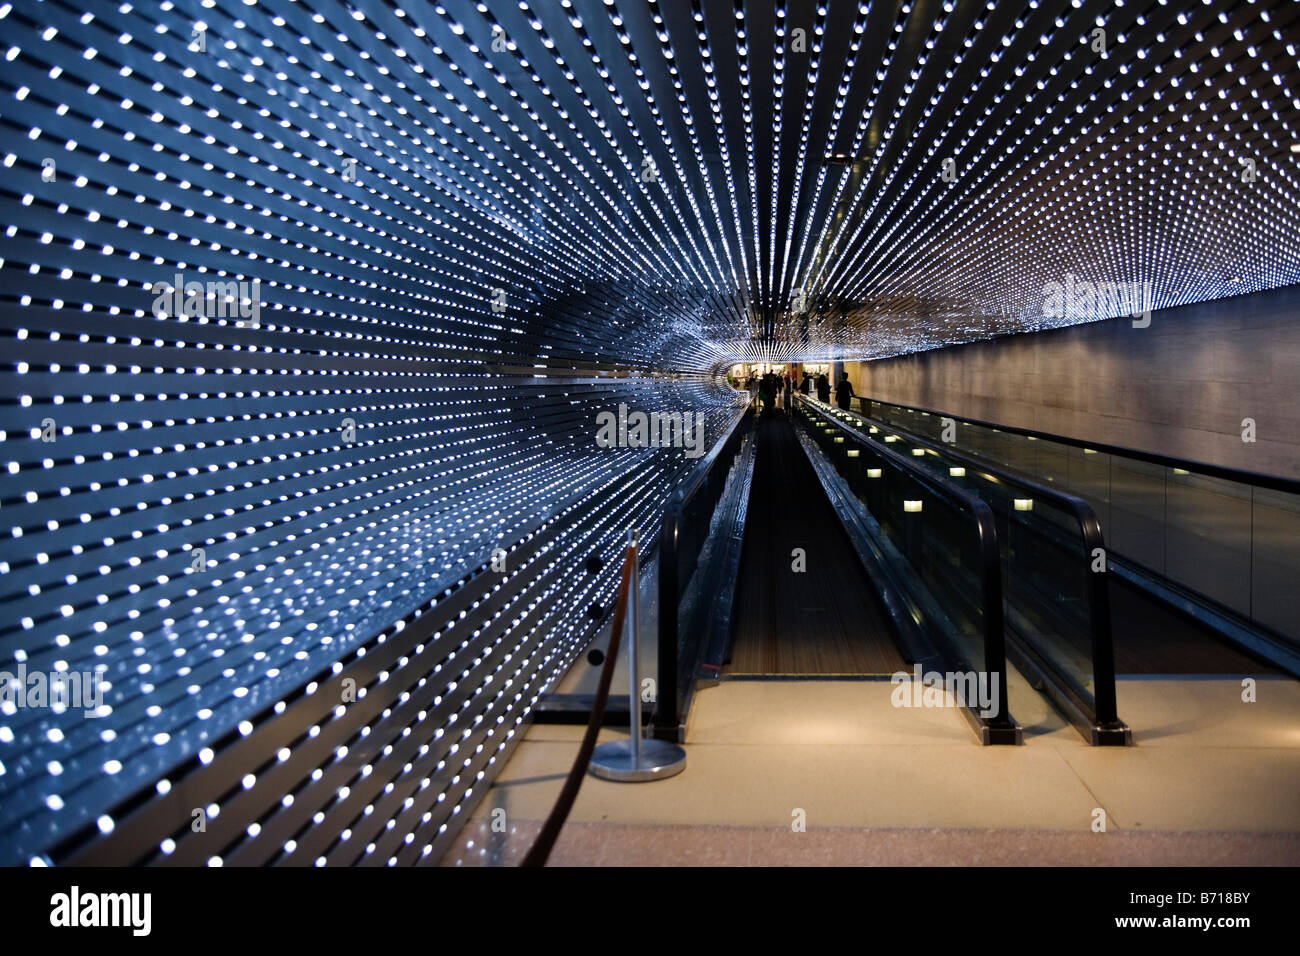 'Multiverse' by Leo Villareal, moving walkway in The Smithsonian National Gallery of Art building - Washington, - Stock Image